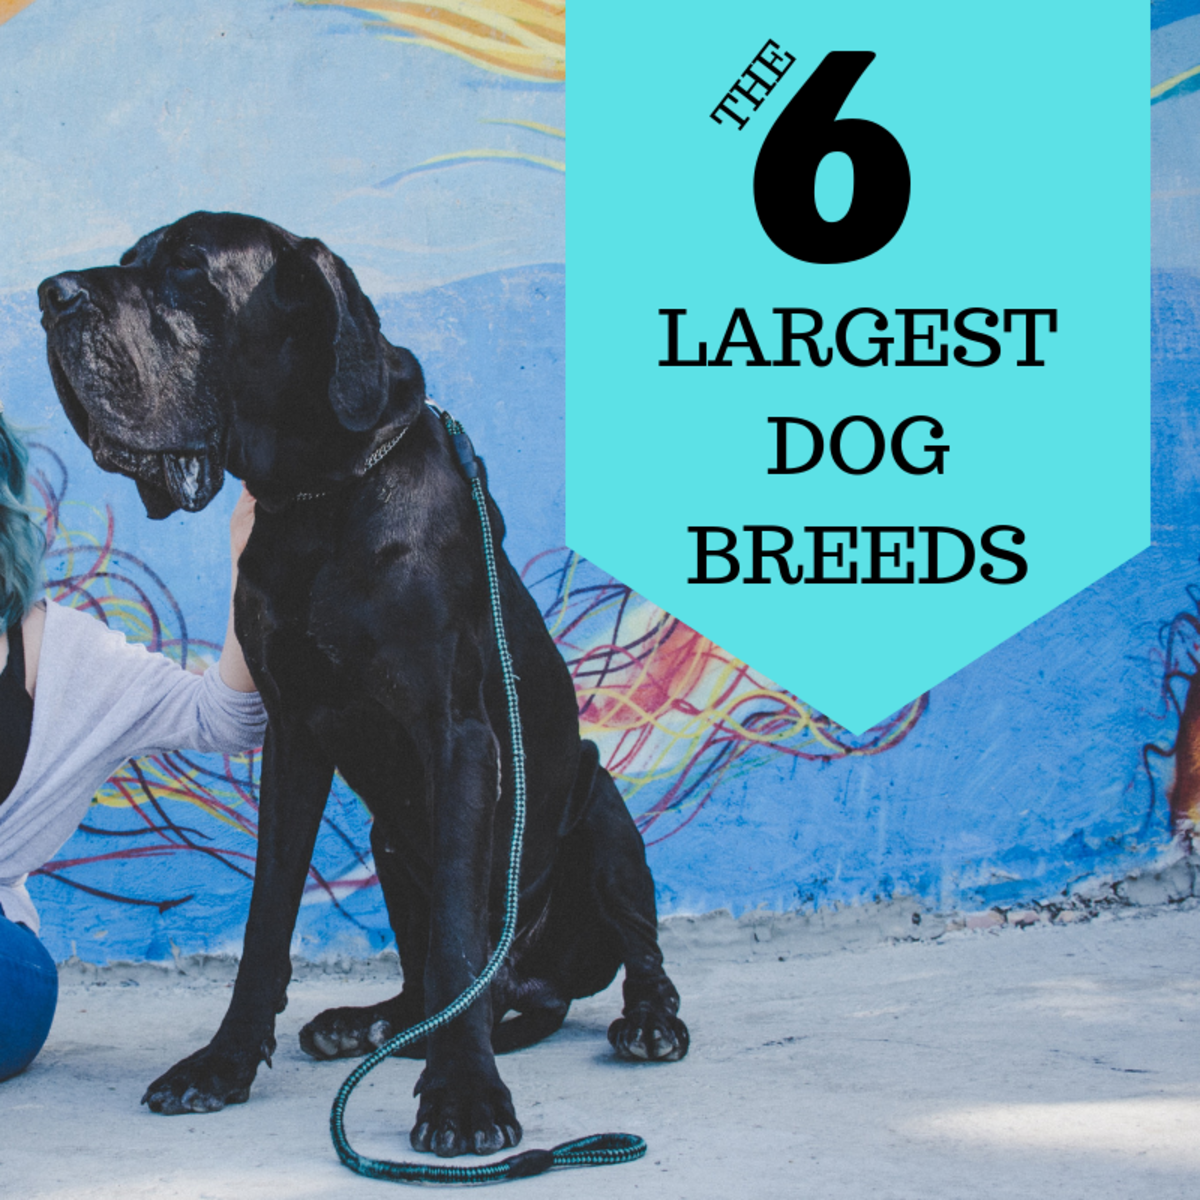 Dogs come in all shapes and sizes, but which breeds are the biggest?